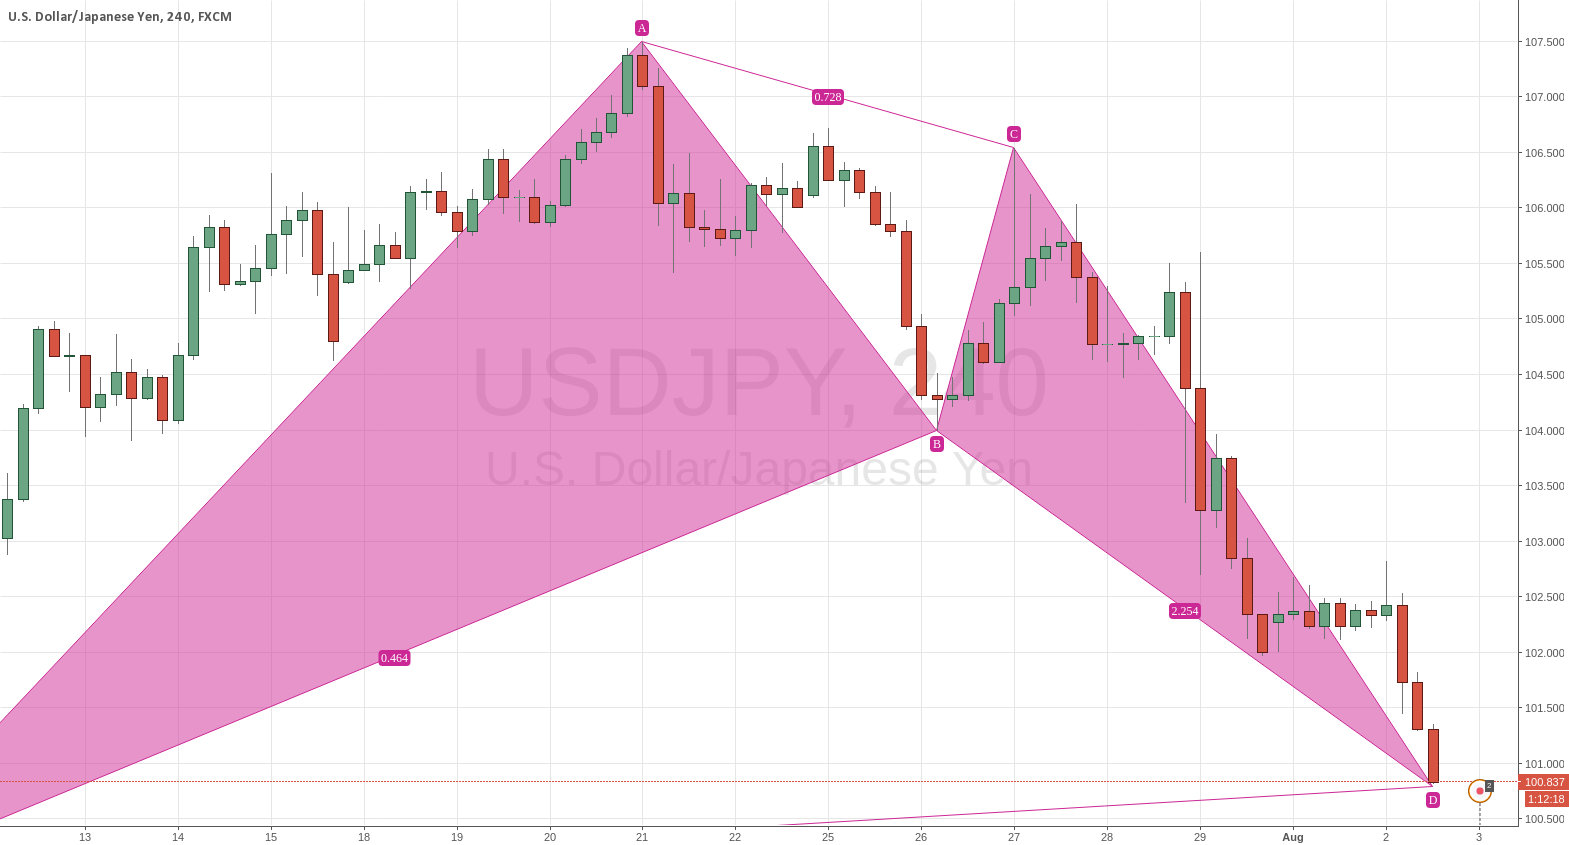 Potential bullish BAT on USDJPY 4H